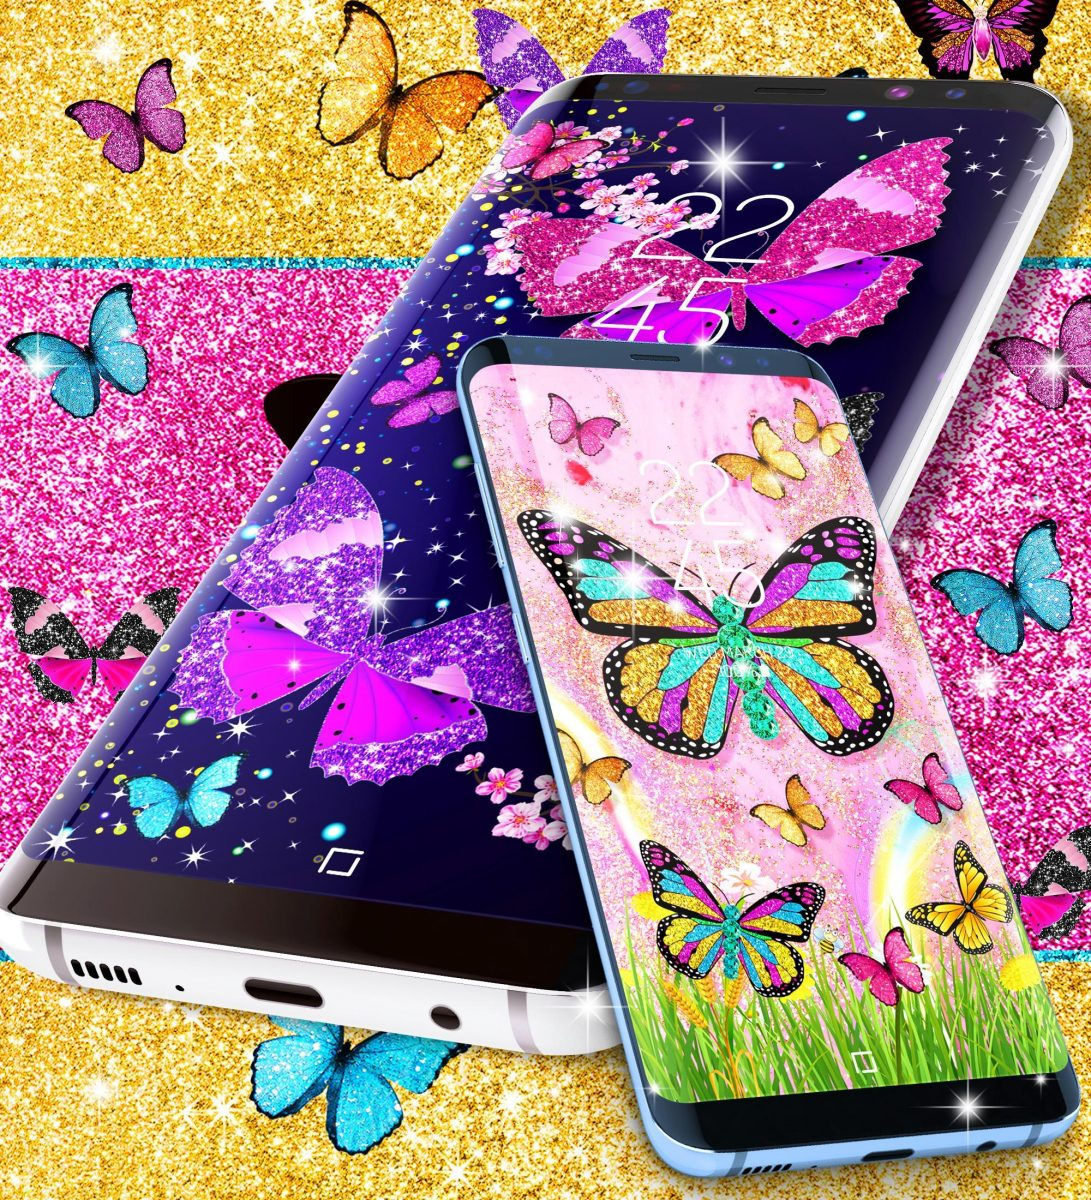 Glitter Butterfly Live Wallpaper For Android Apk Download - Smartphone , HD Wallpaper & Backgrounds